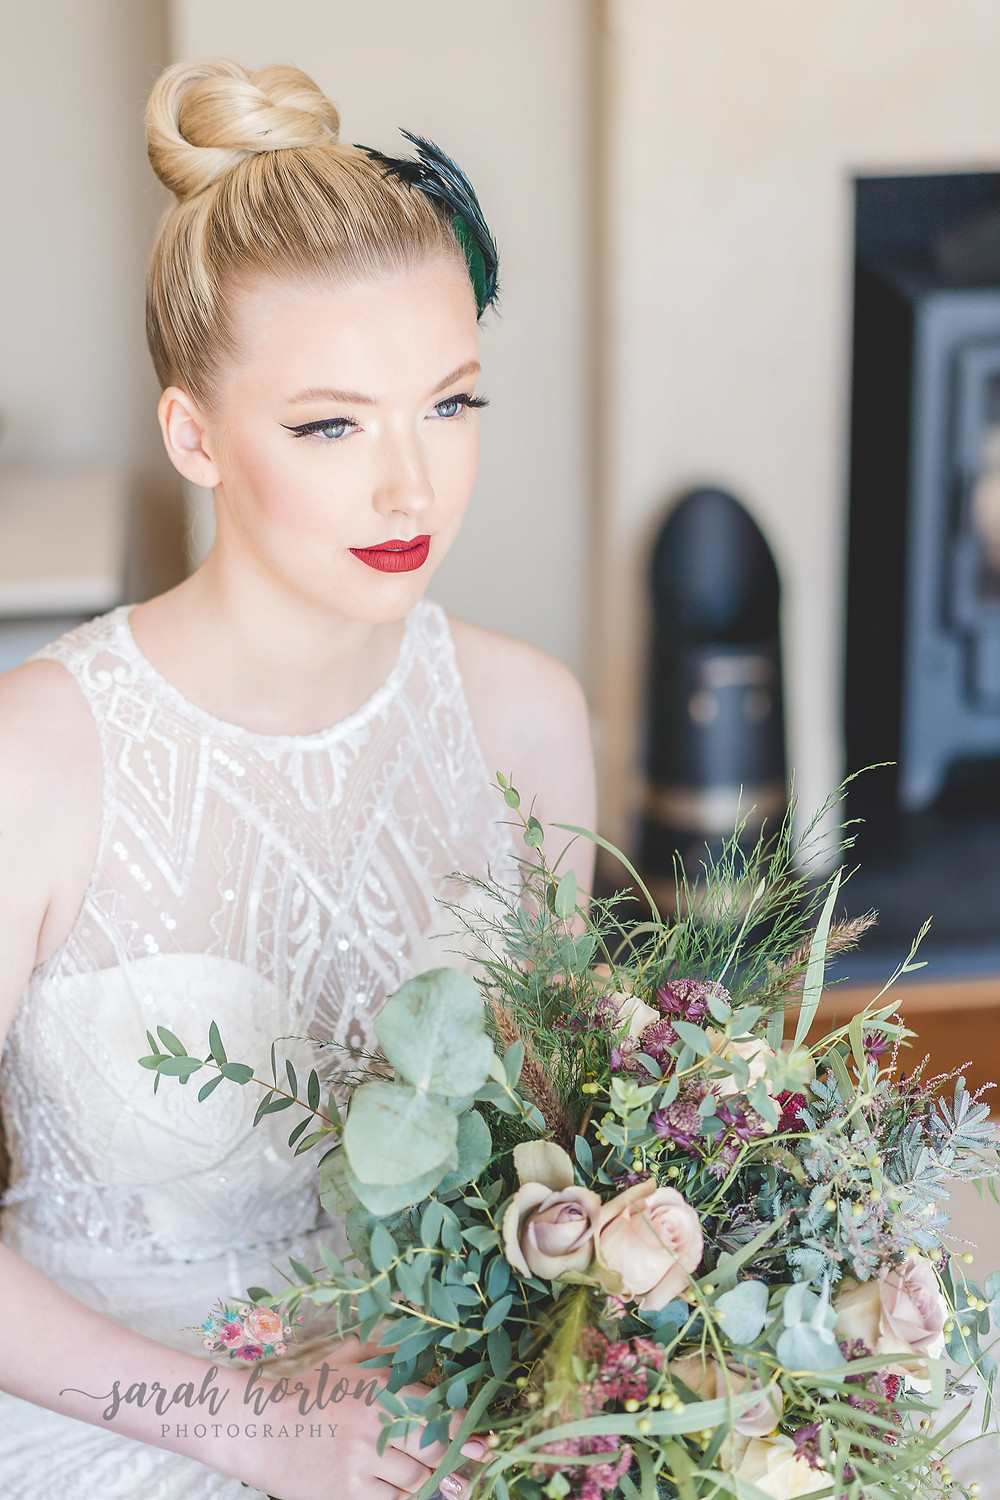 wedding makeup looks by Daniella Robinson with red lipstick